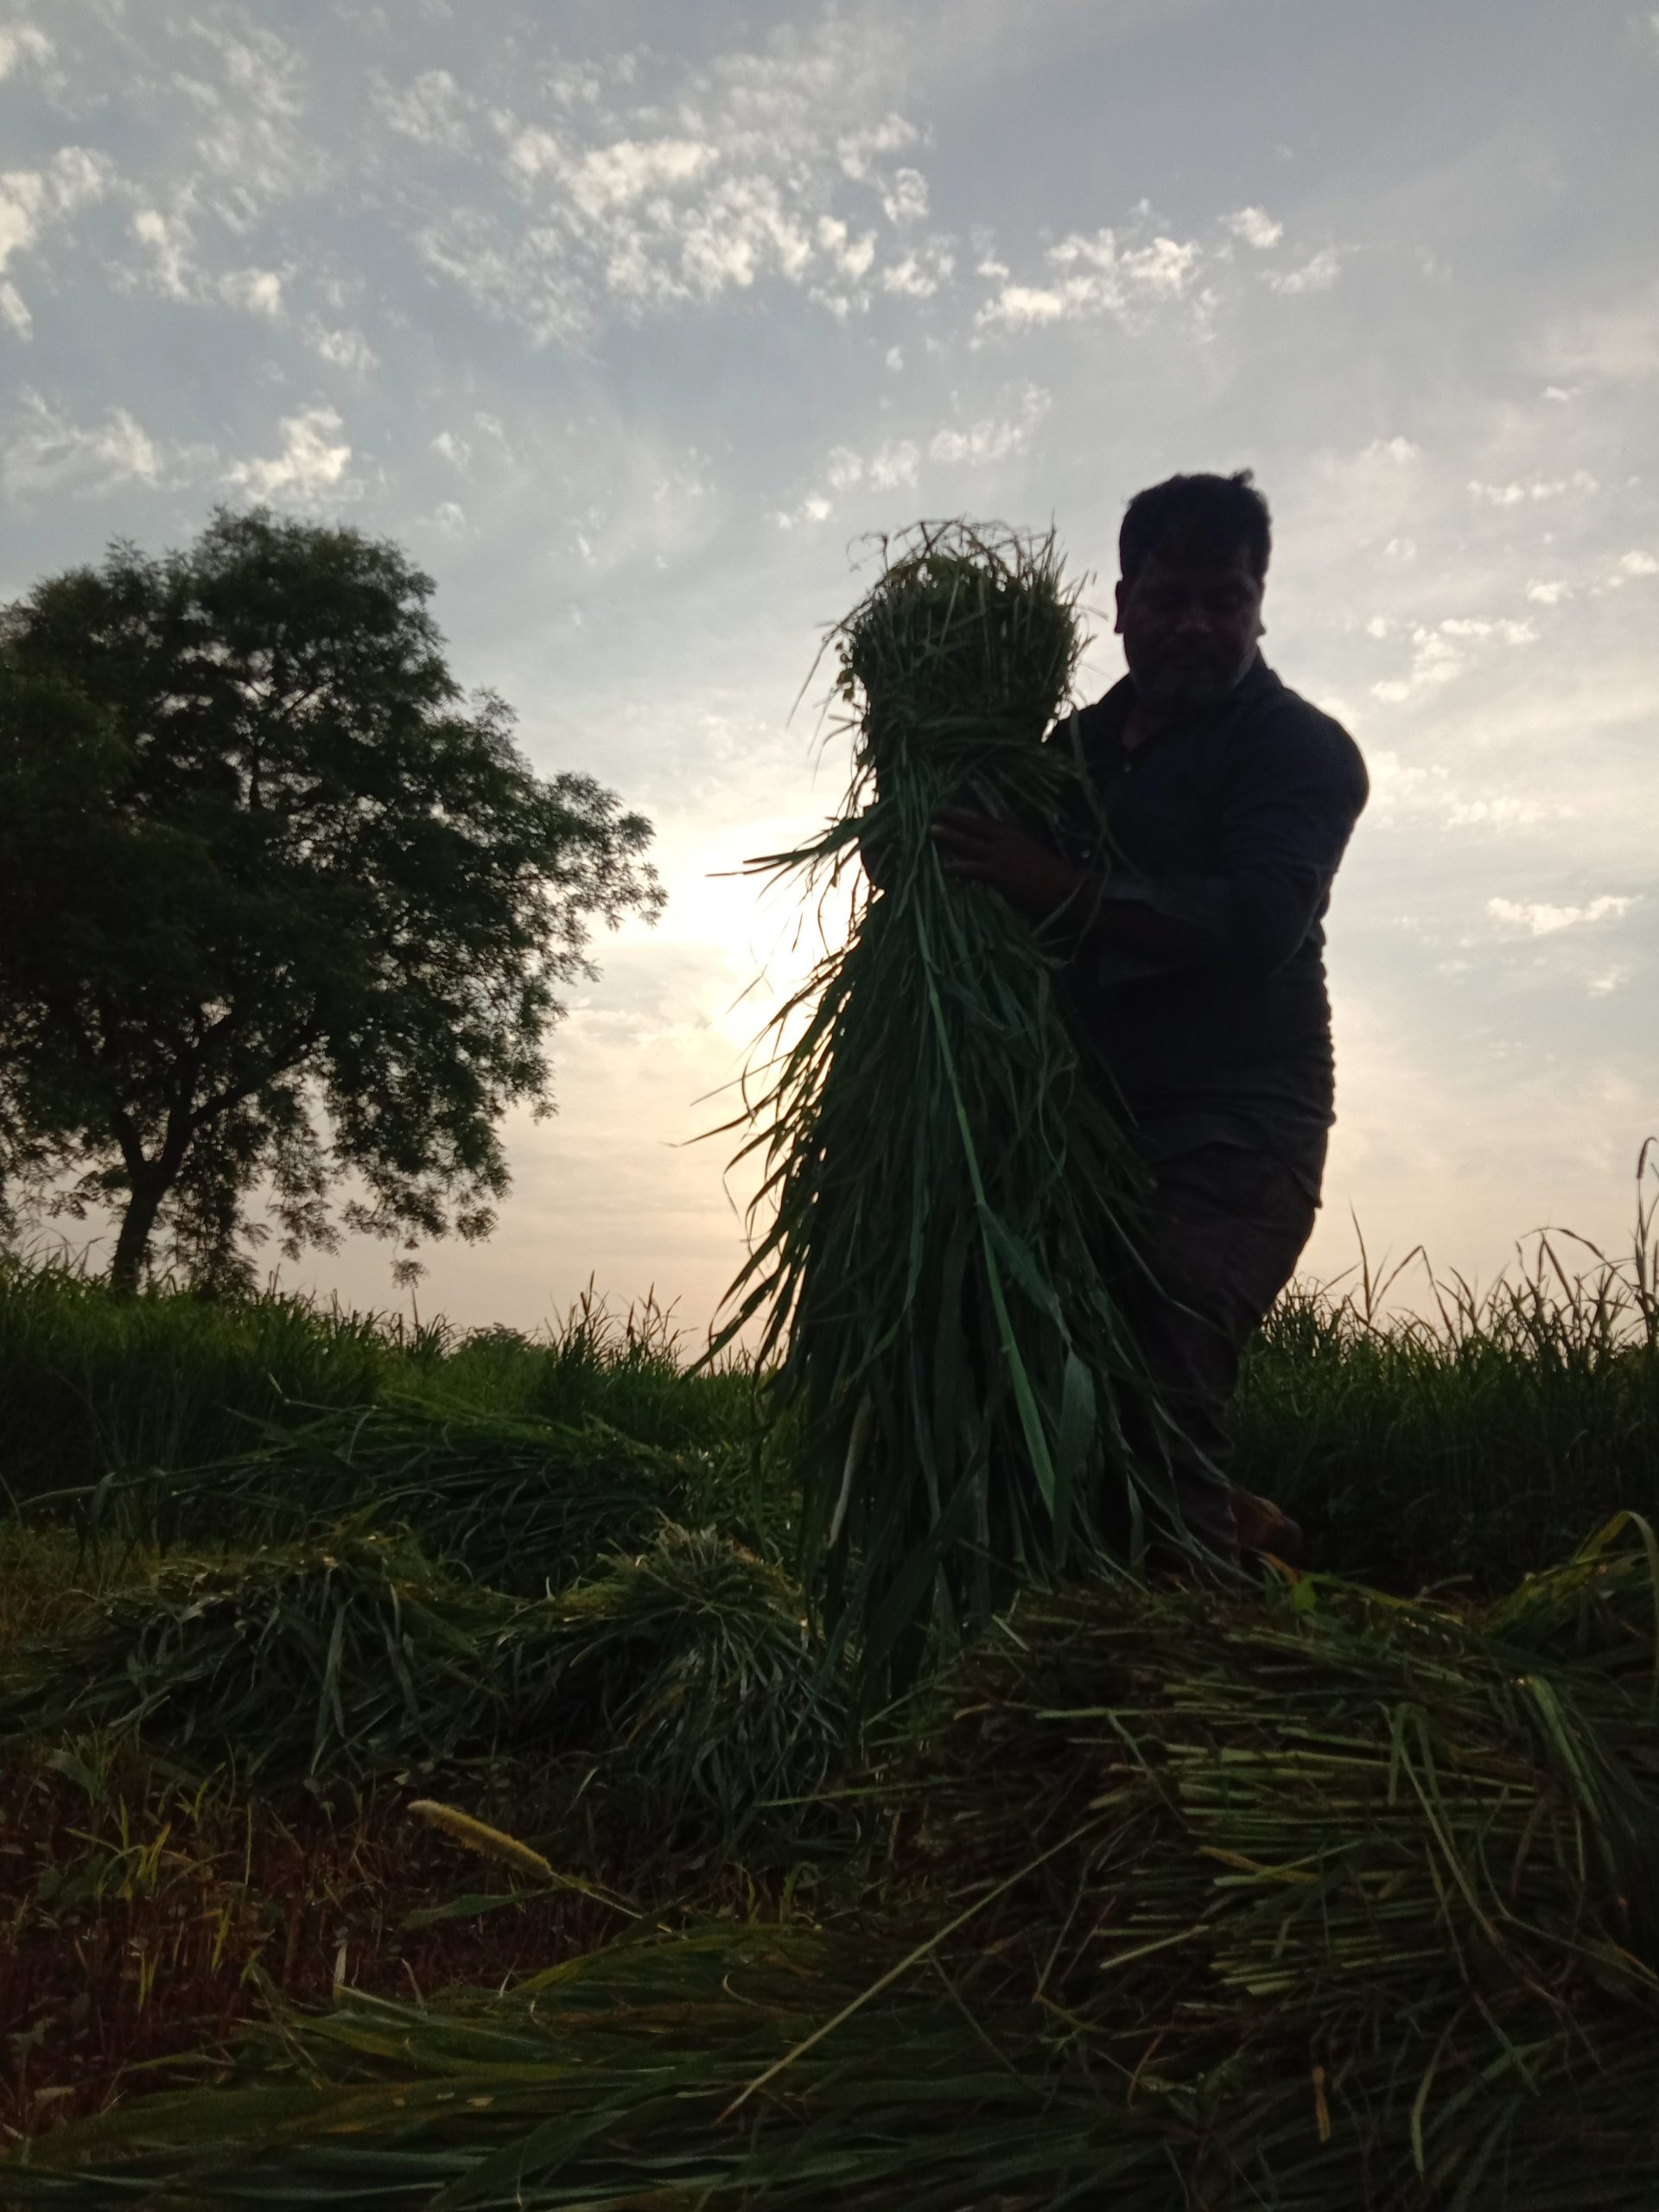 A farmer working in a field